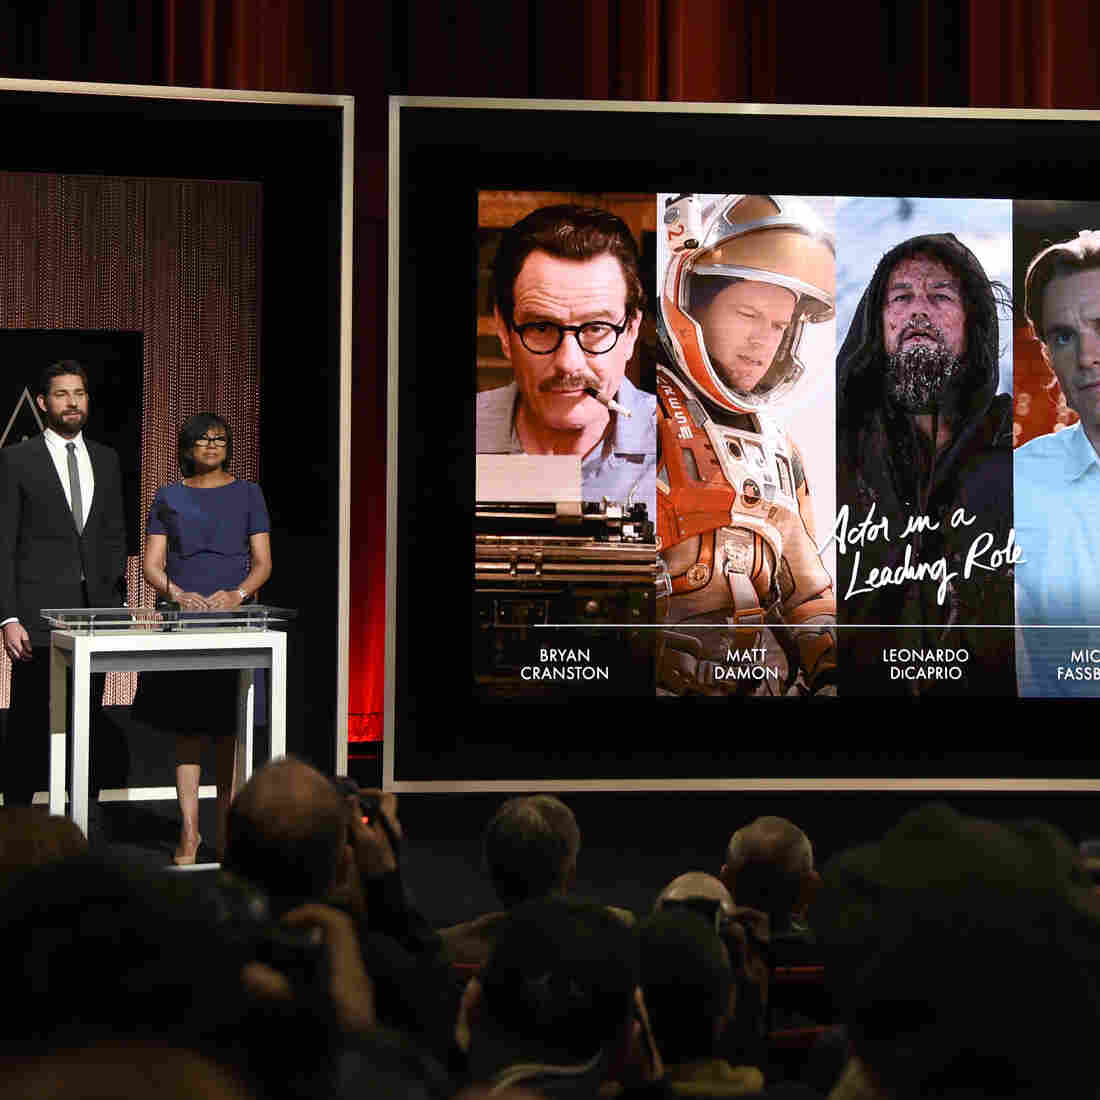 Diversity In Hollywood: Here's What Critics Are Saying About Round 2 Of #OscarSoWhite